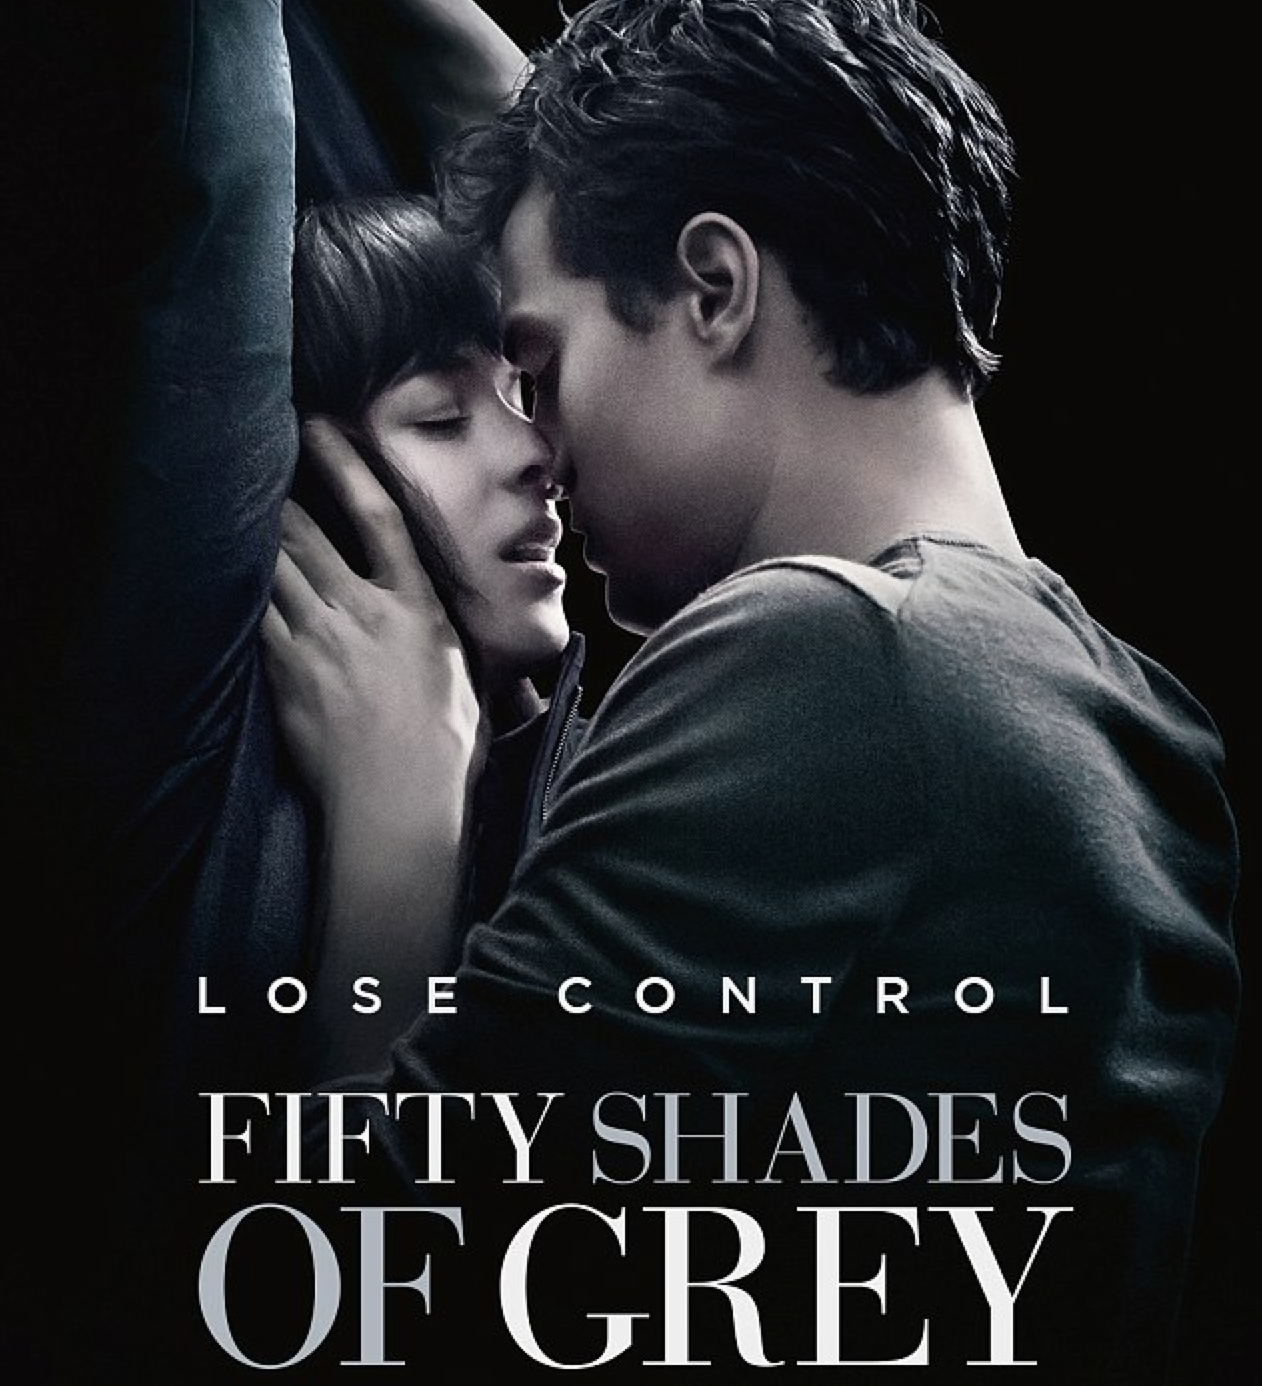 50-Shades-of-Grefhdhd